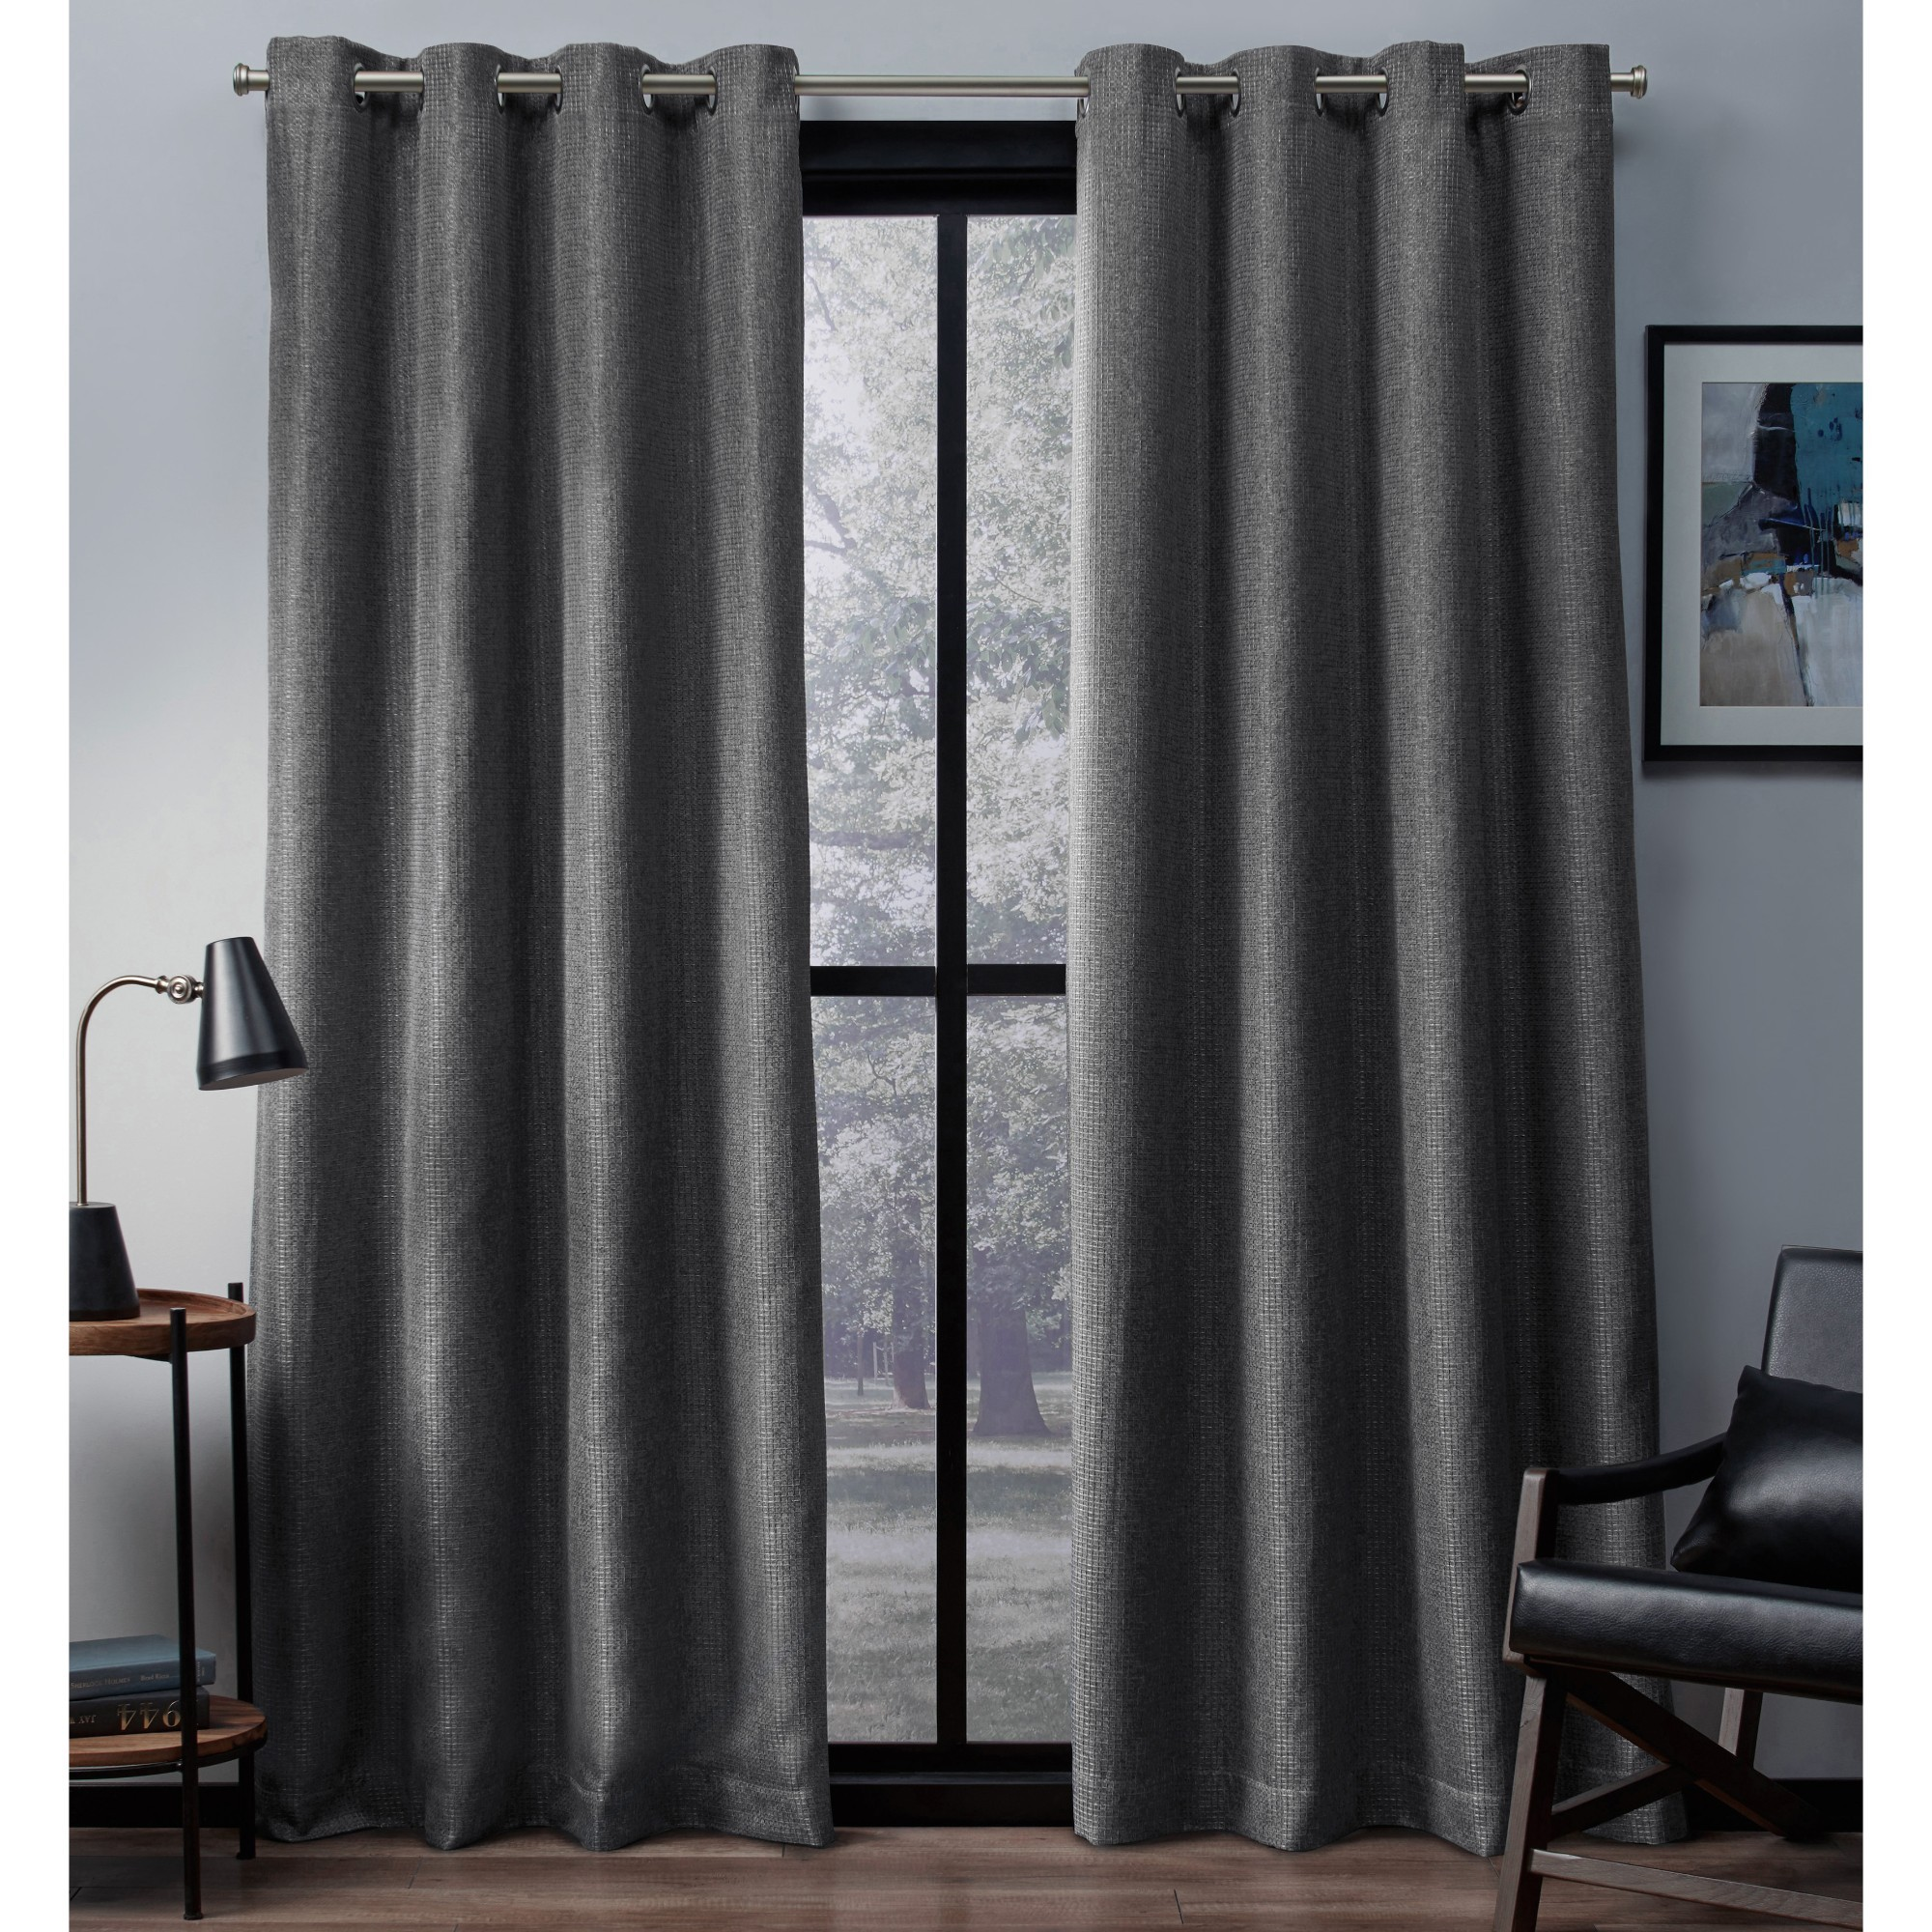 Exclusive Home Eglinton Woven Blackout Window Curtain Panel Pair with Grommet Top